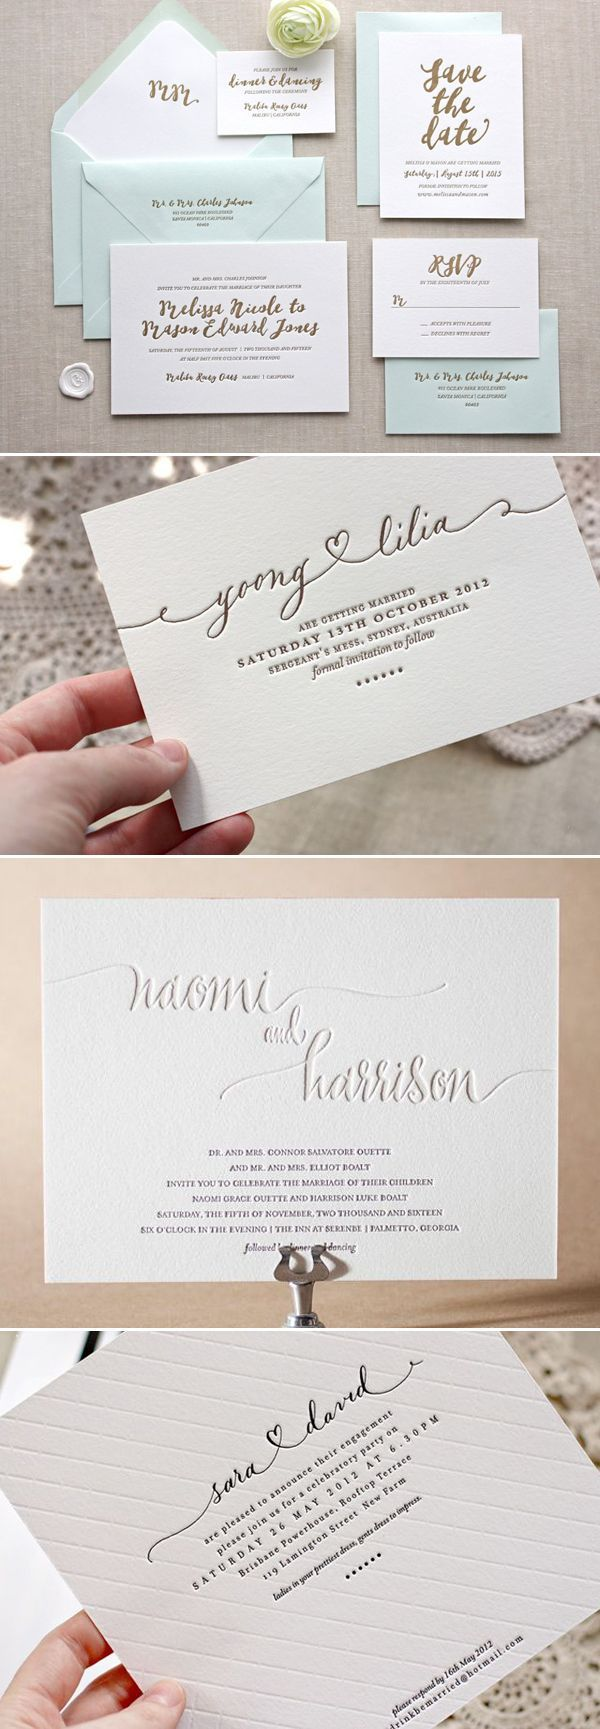 simple is beautiful 30 creative invitation ideas for minimalist couples - Amazing Wedding Invitations